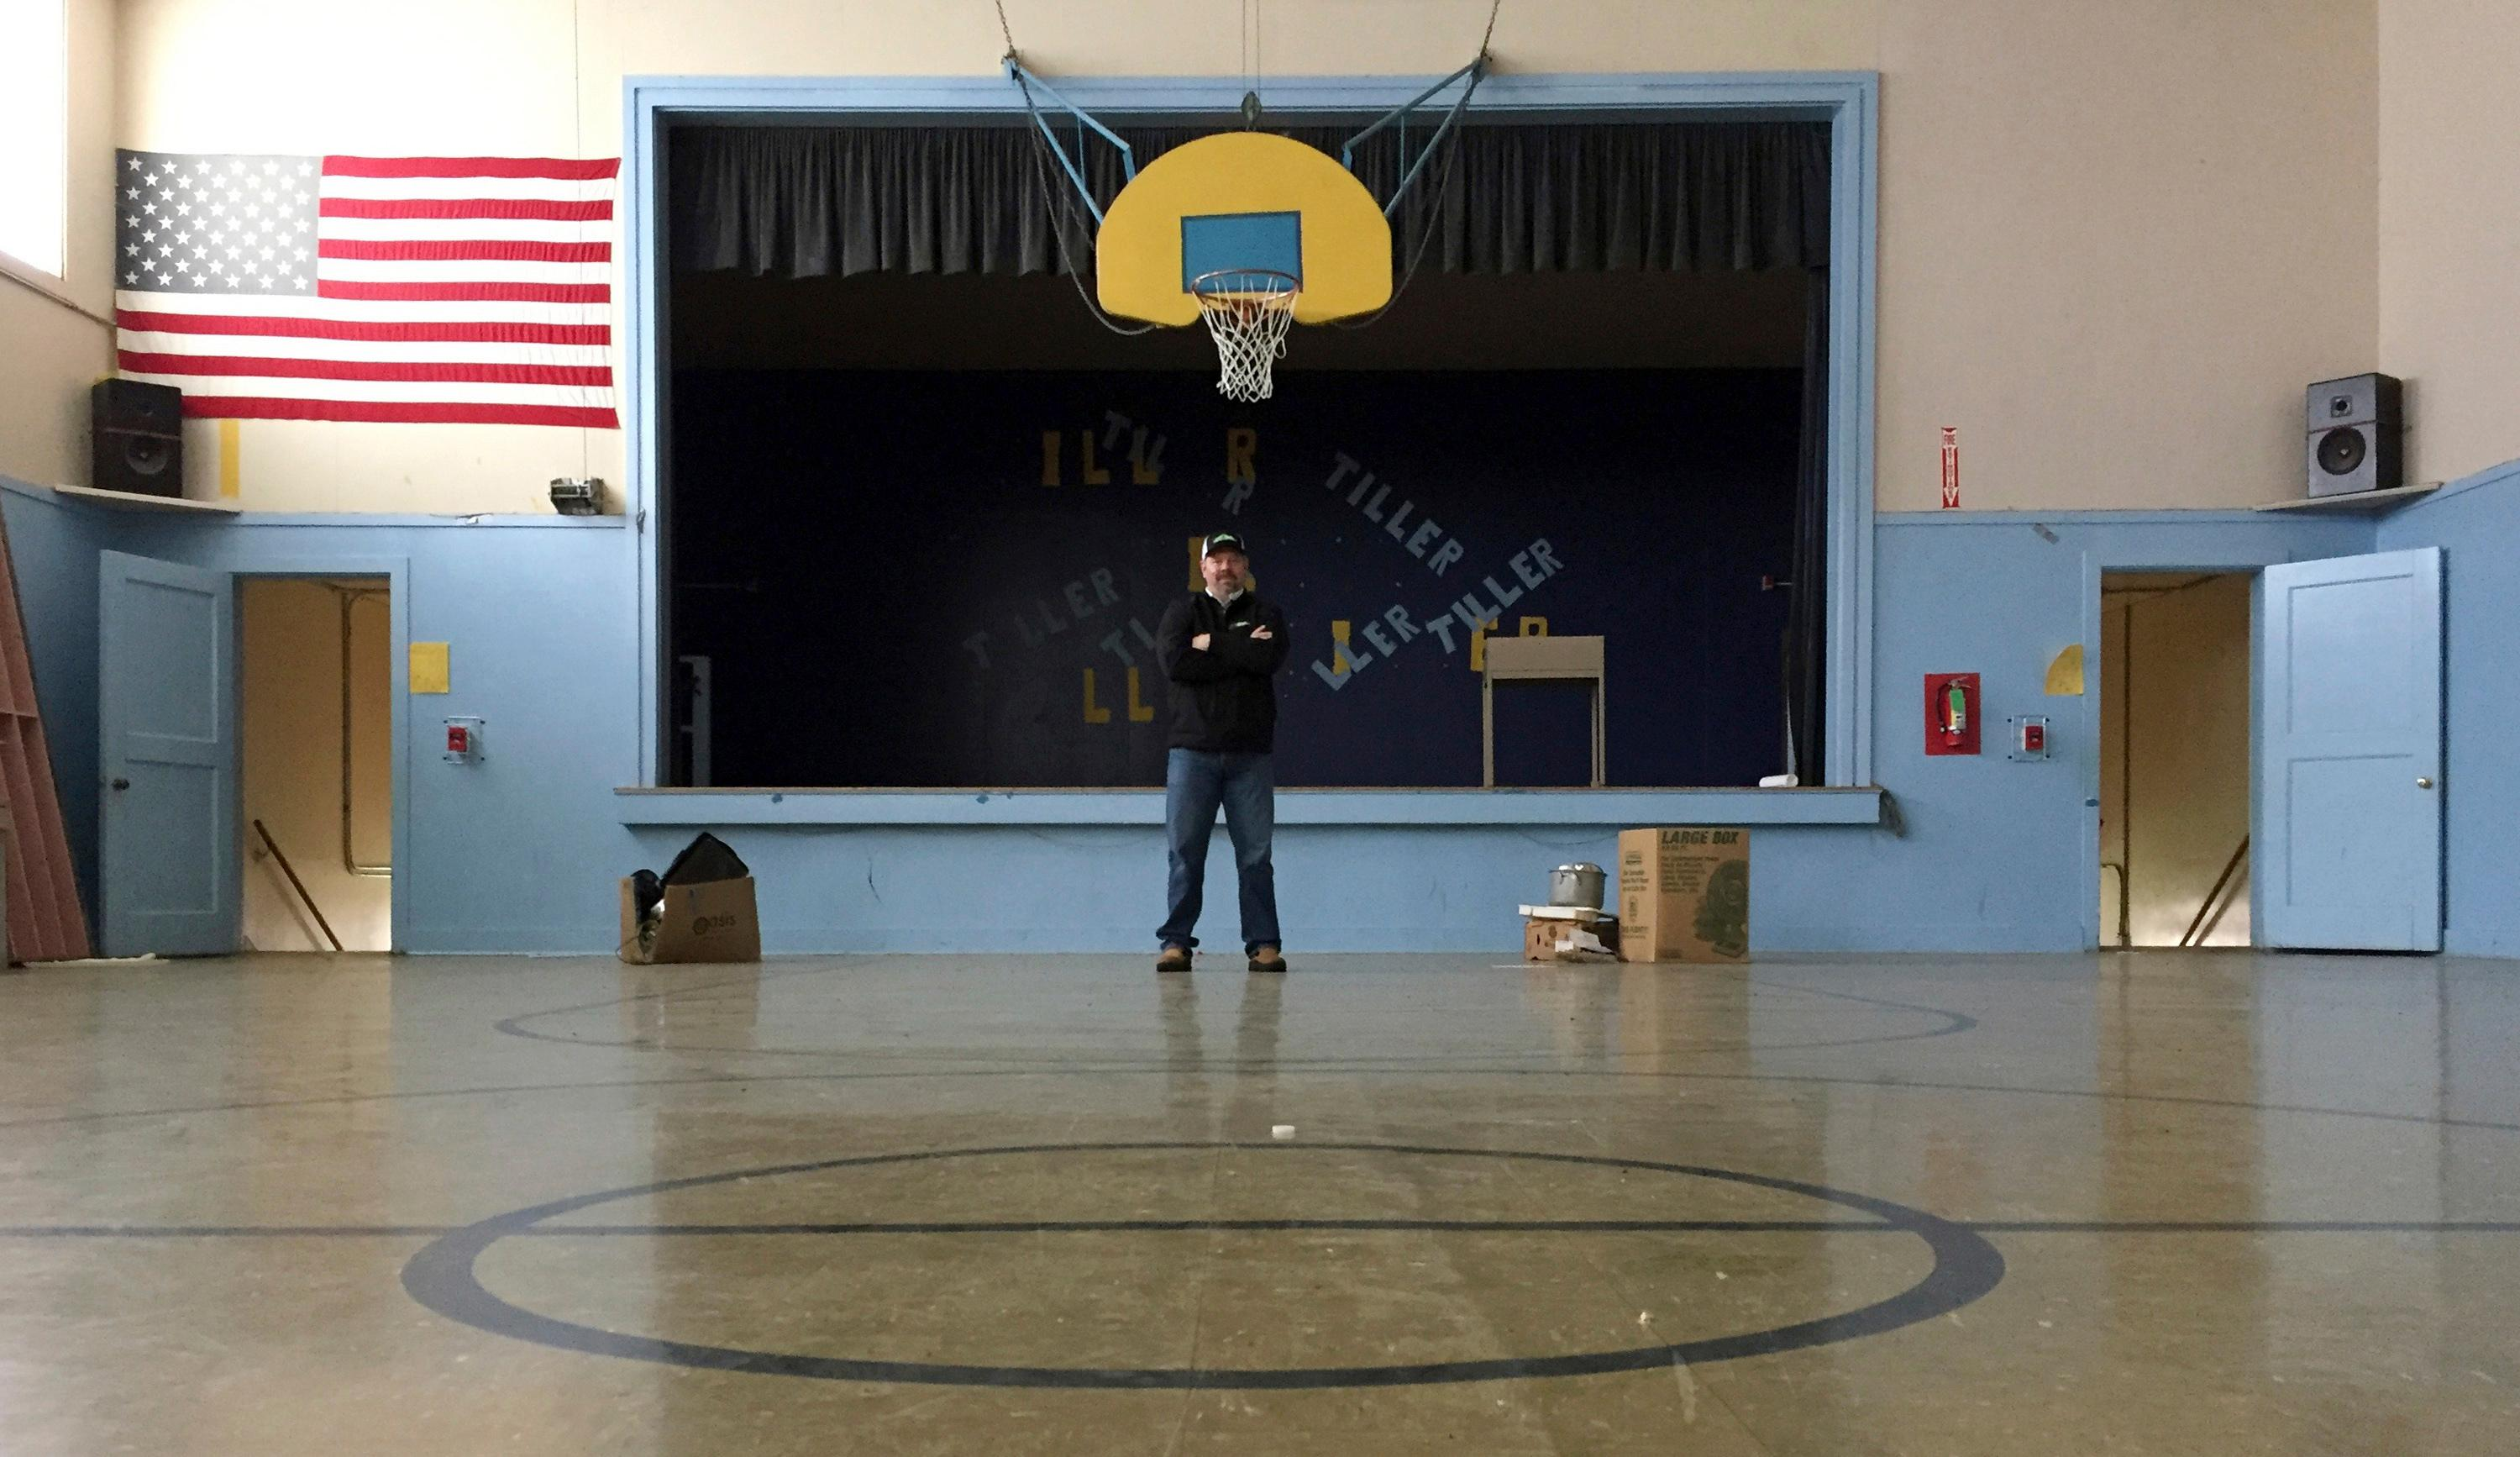 In this April 5, 2017 photo, Garrett Zoller, principal broker with LandandWildlife.com, stands under a basketball hoop in the abandoned gym of Tiller Elementary School in Tiller, Ore. Zoller is working to sell almost all of the downtown of the tiny, dying timber town for a total of $3.85 million. A potential buyer has come forward but is remaining anonymous -- and back-up offers are still being accepted. (AP Photo/Gillian Flaccus)